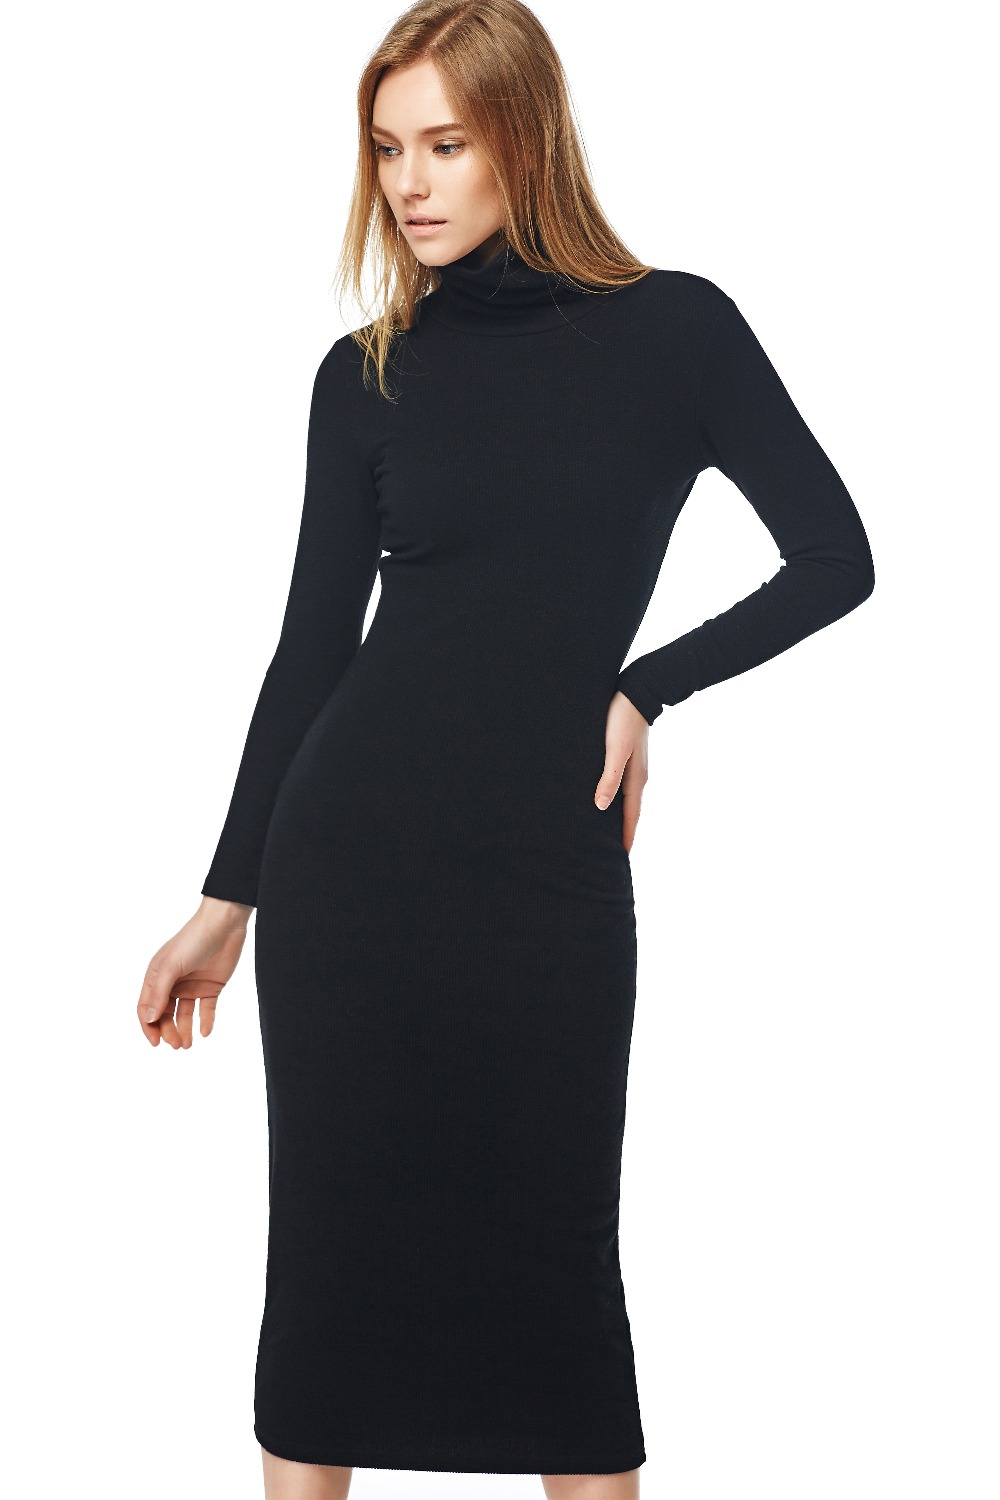 Sunup or sundown, you'll stun in this sweater knit dress from Dennis Basso. With ribbing on the long sleeve cuffs and turtleneck, it fits you like a comfy sweater up top then flares from the waist for a relaxed, fluid look.3/5(4).